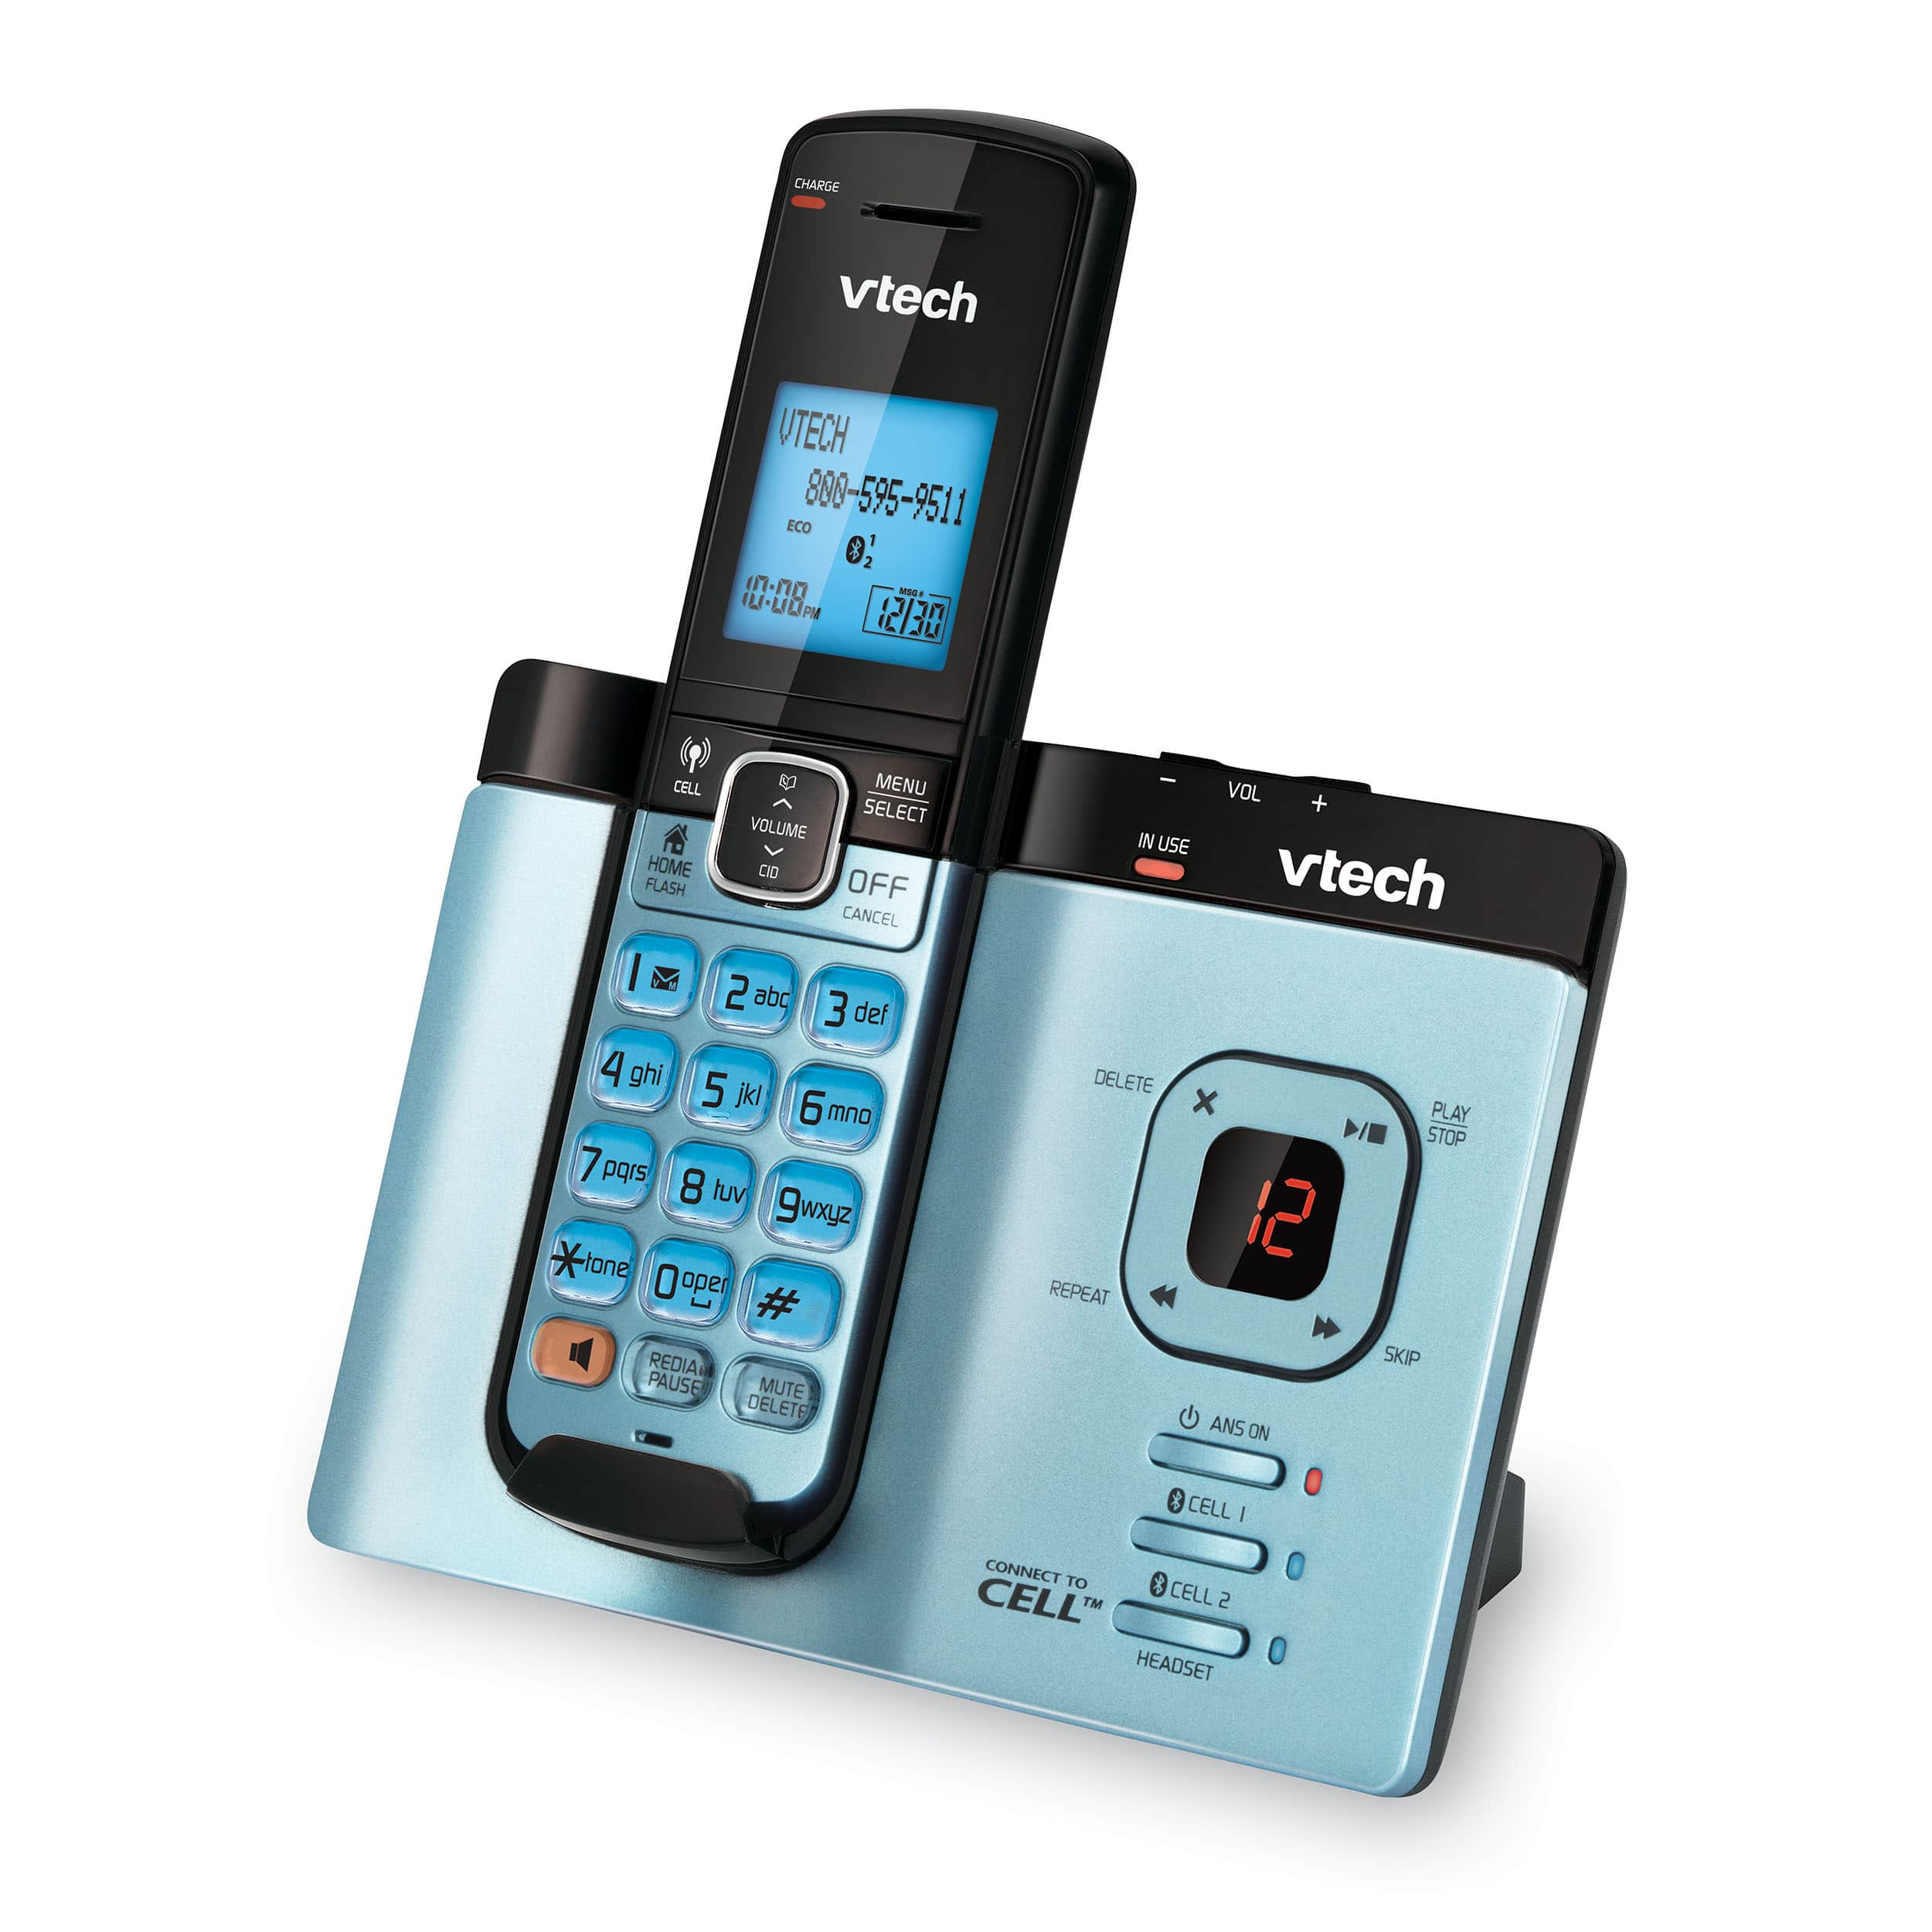 4 Handset Connect to Cell™ Phone System with Caller ID/Call Waiting